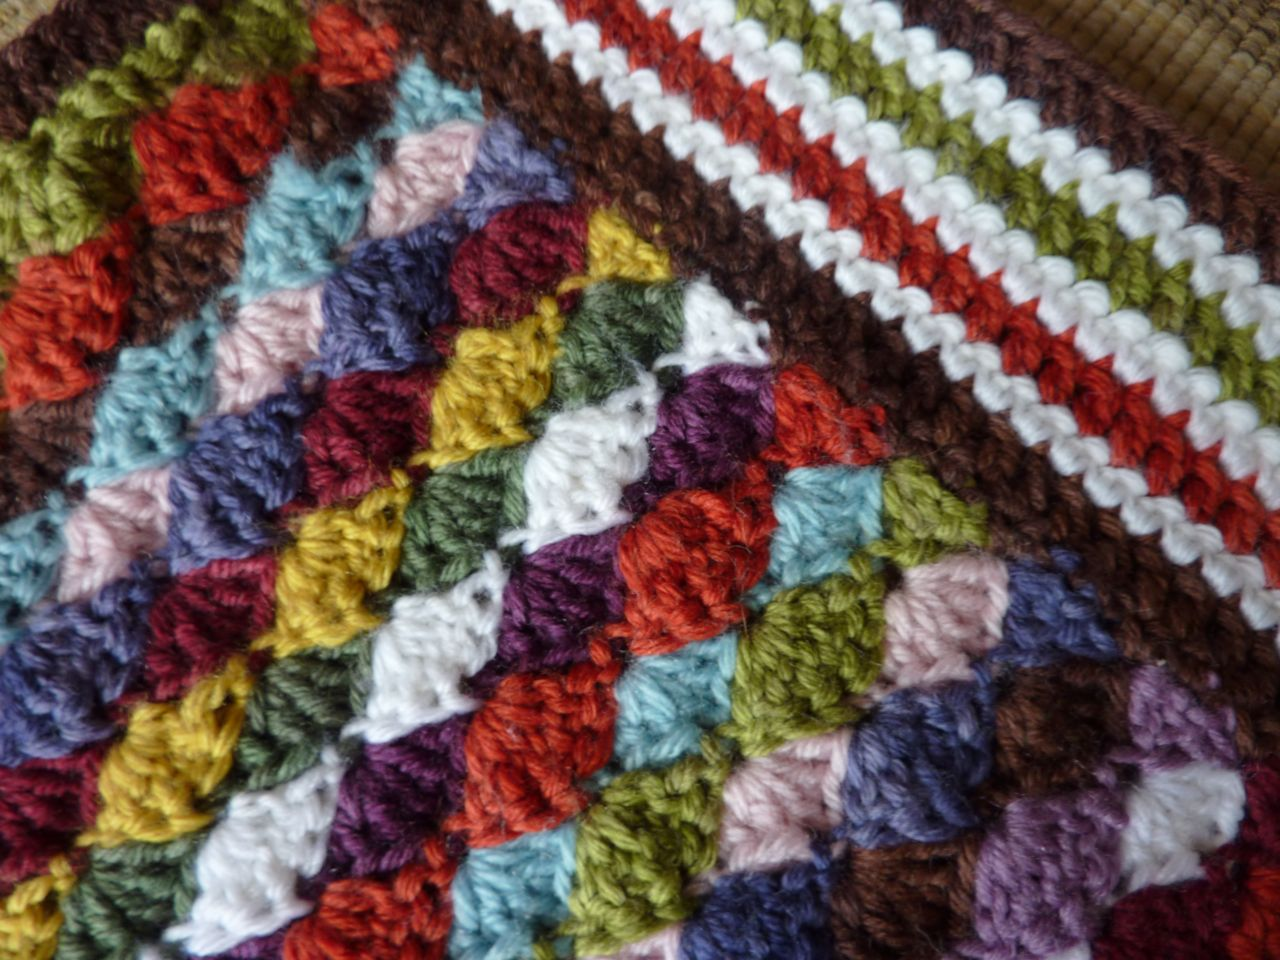 Crochet Videos : My Rose Valley: Crochet blanket - Voila!